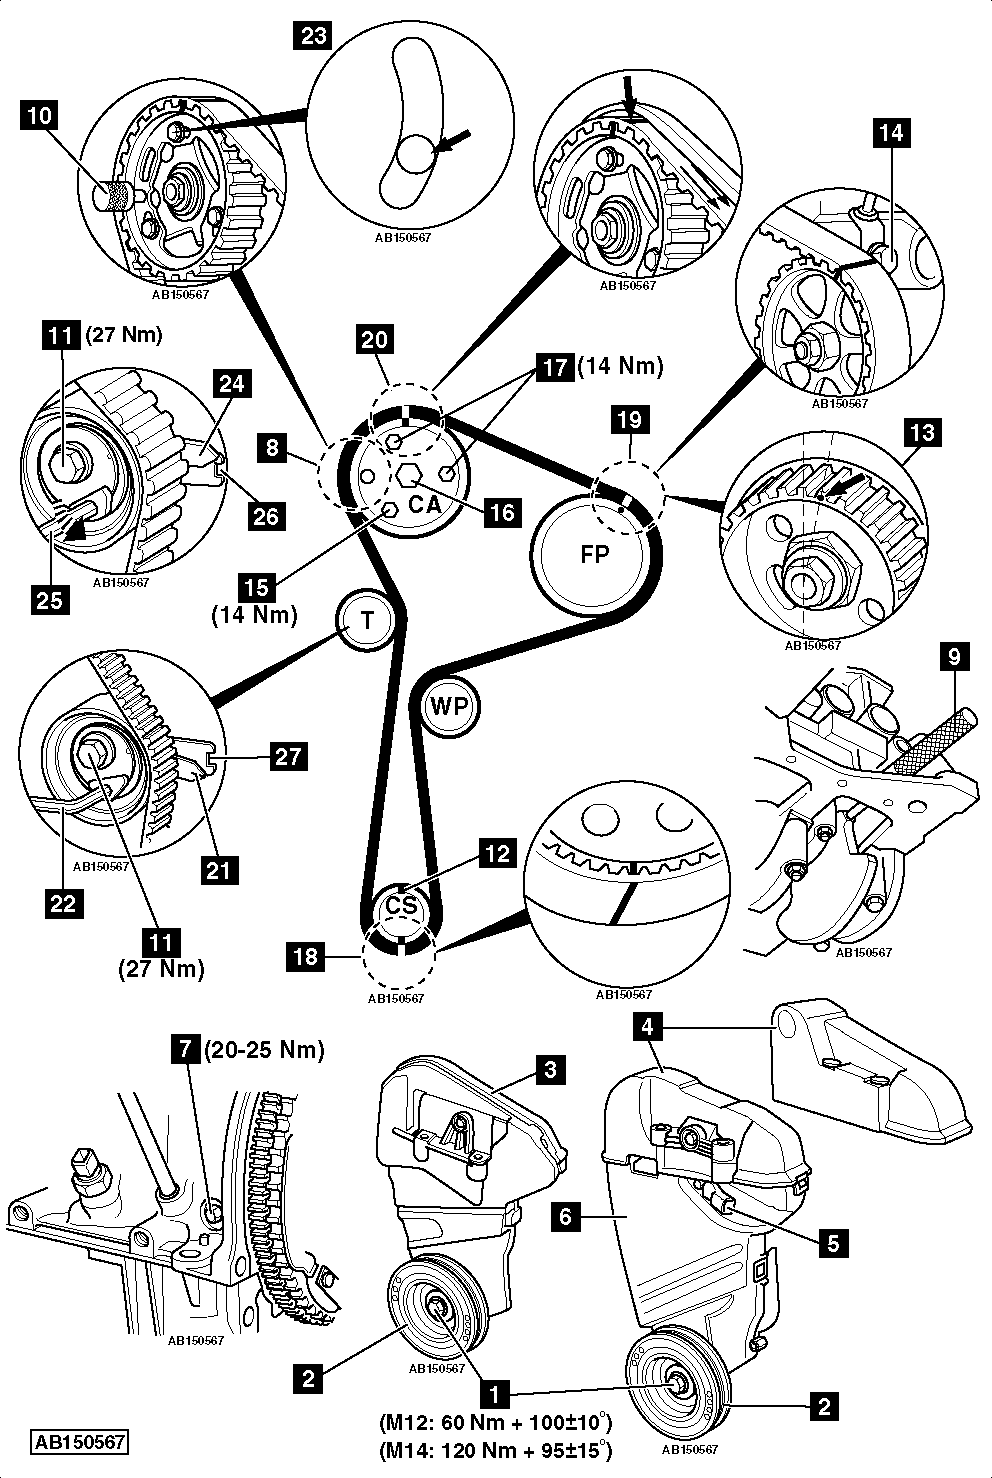 High Pressure Fuel Pump Location Pontiac Solstice besides 2005 Chevy Colorado Fuse Box Diagram furthermore P 0900c152801b371b furthermore 2000 Jetta Cruise Control Wiring Diagram likewise 2. on saab 9 3 transmission diagram